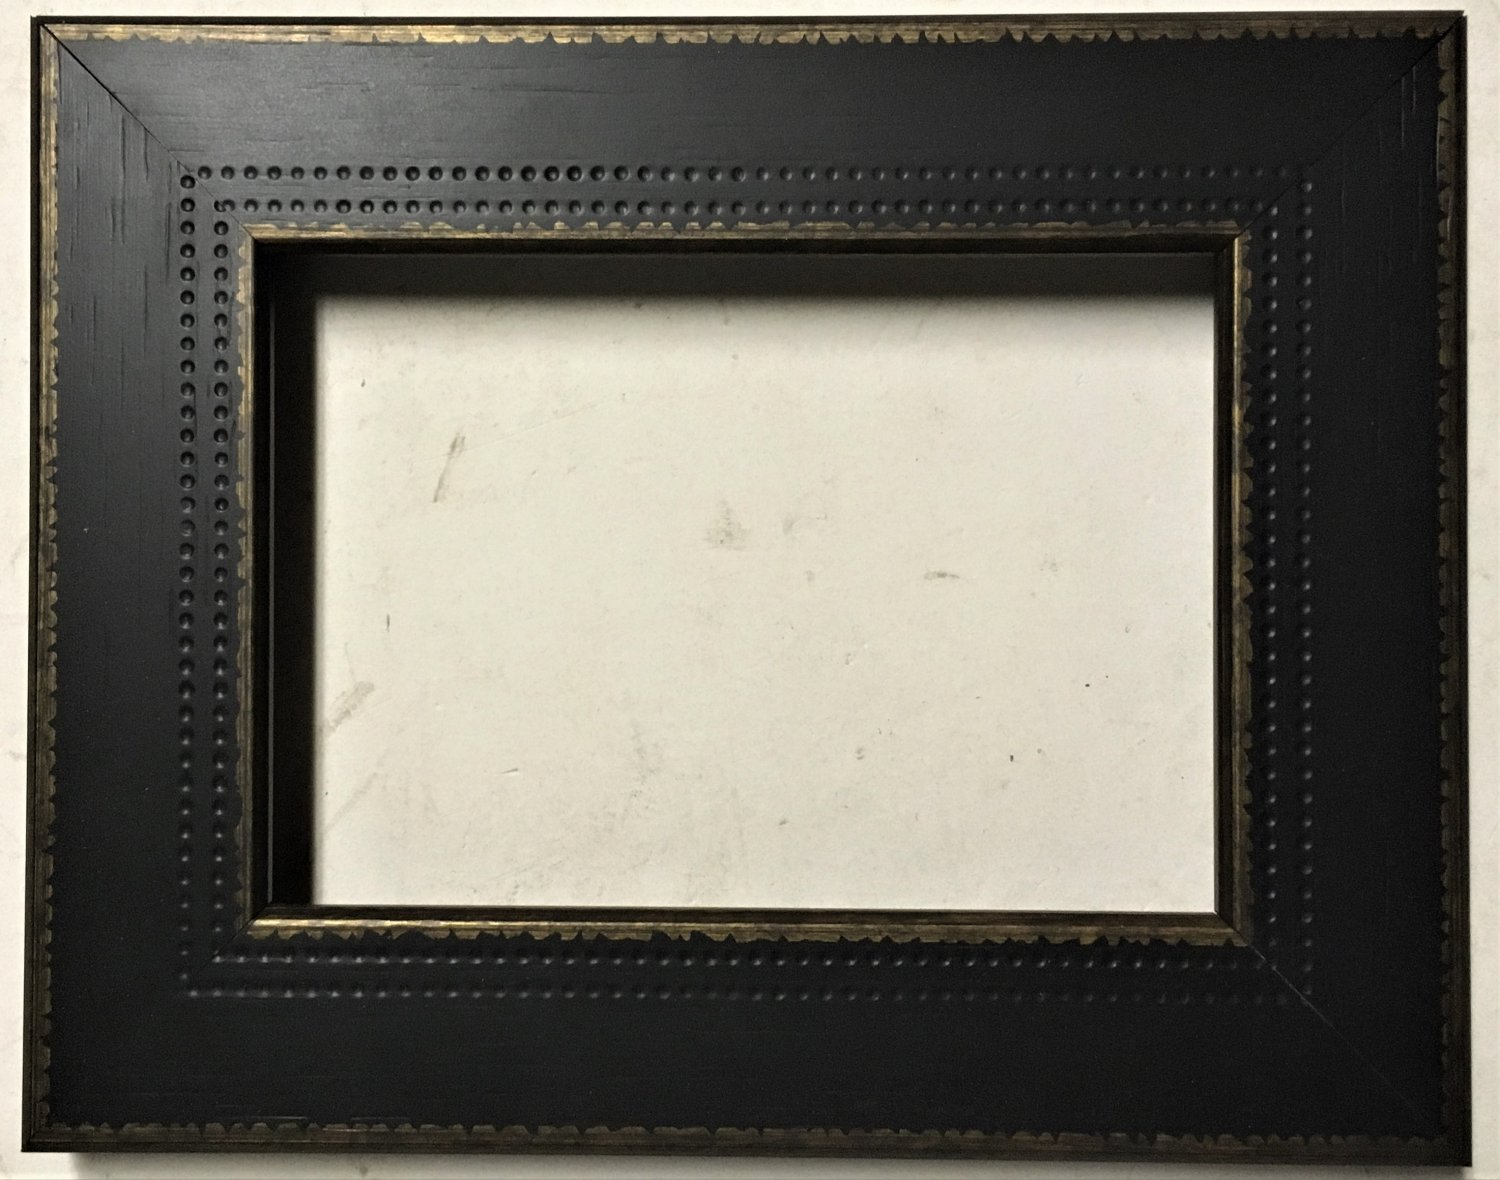 """10 x 10 1-3/4"""" Black w/Gold Picture Frame"""